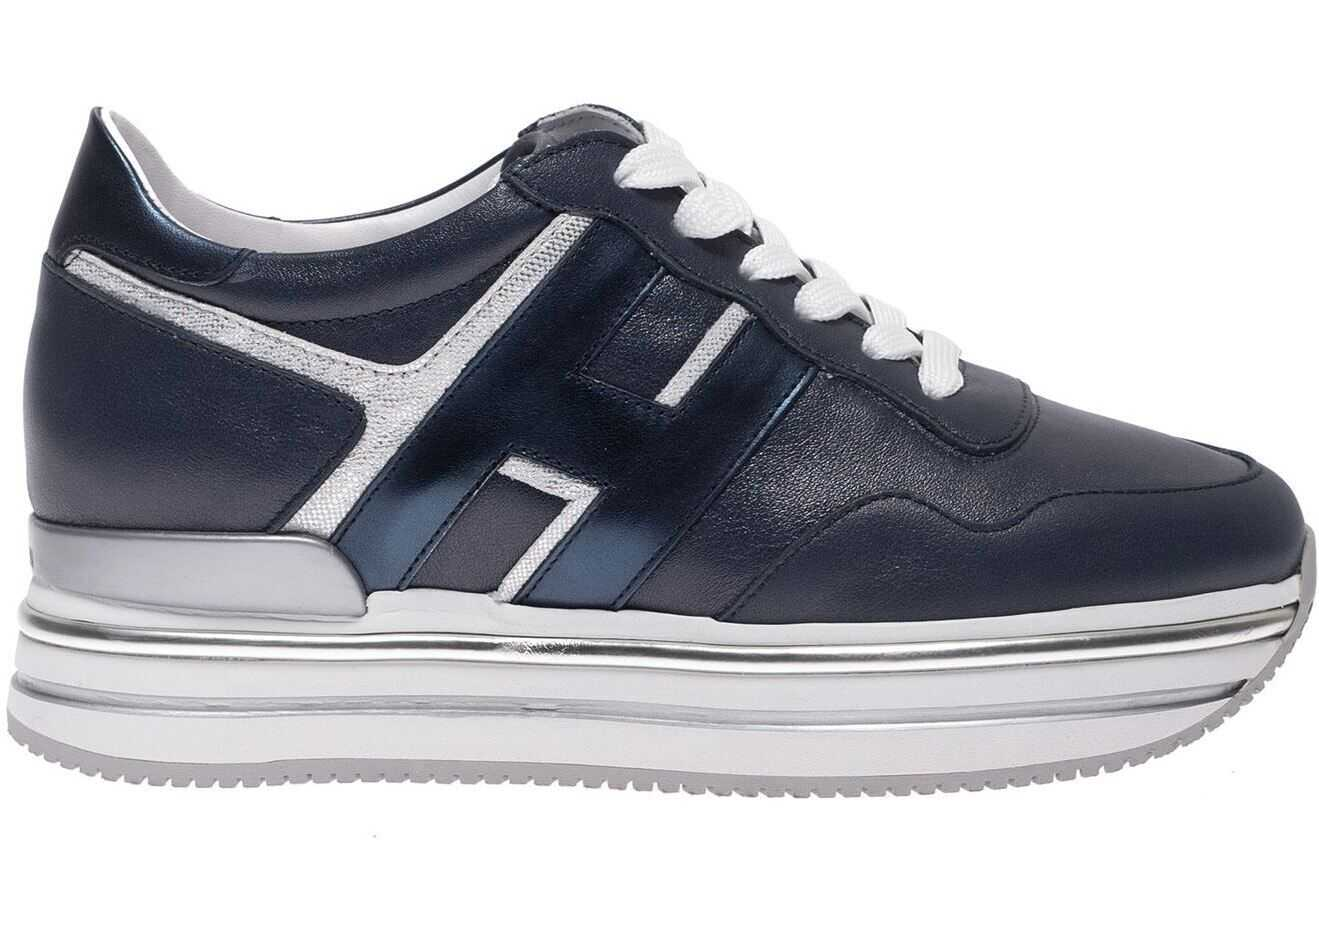 Hogan H468 Sneakers In Blue And Silver Blue